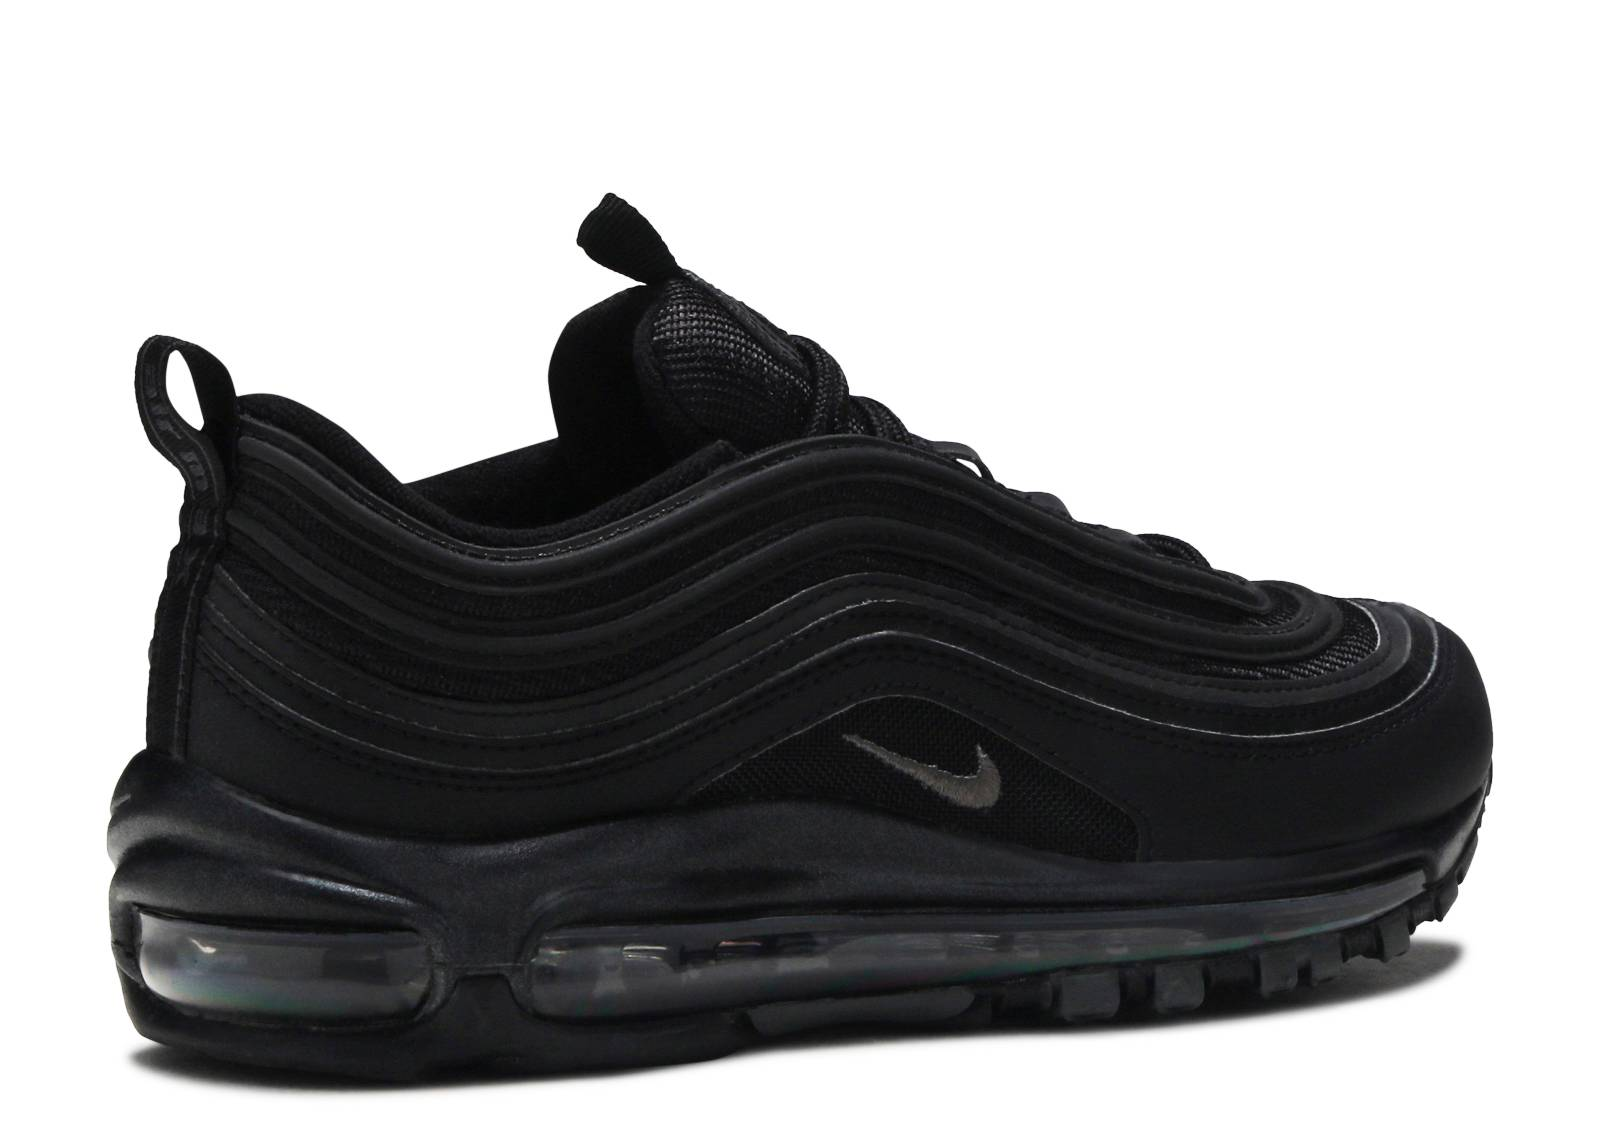 reputable site e0d3a 4f59c W Air Max 97